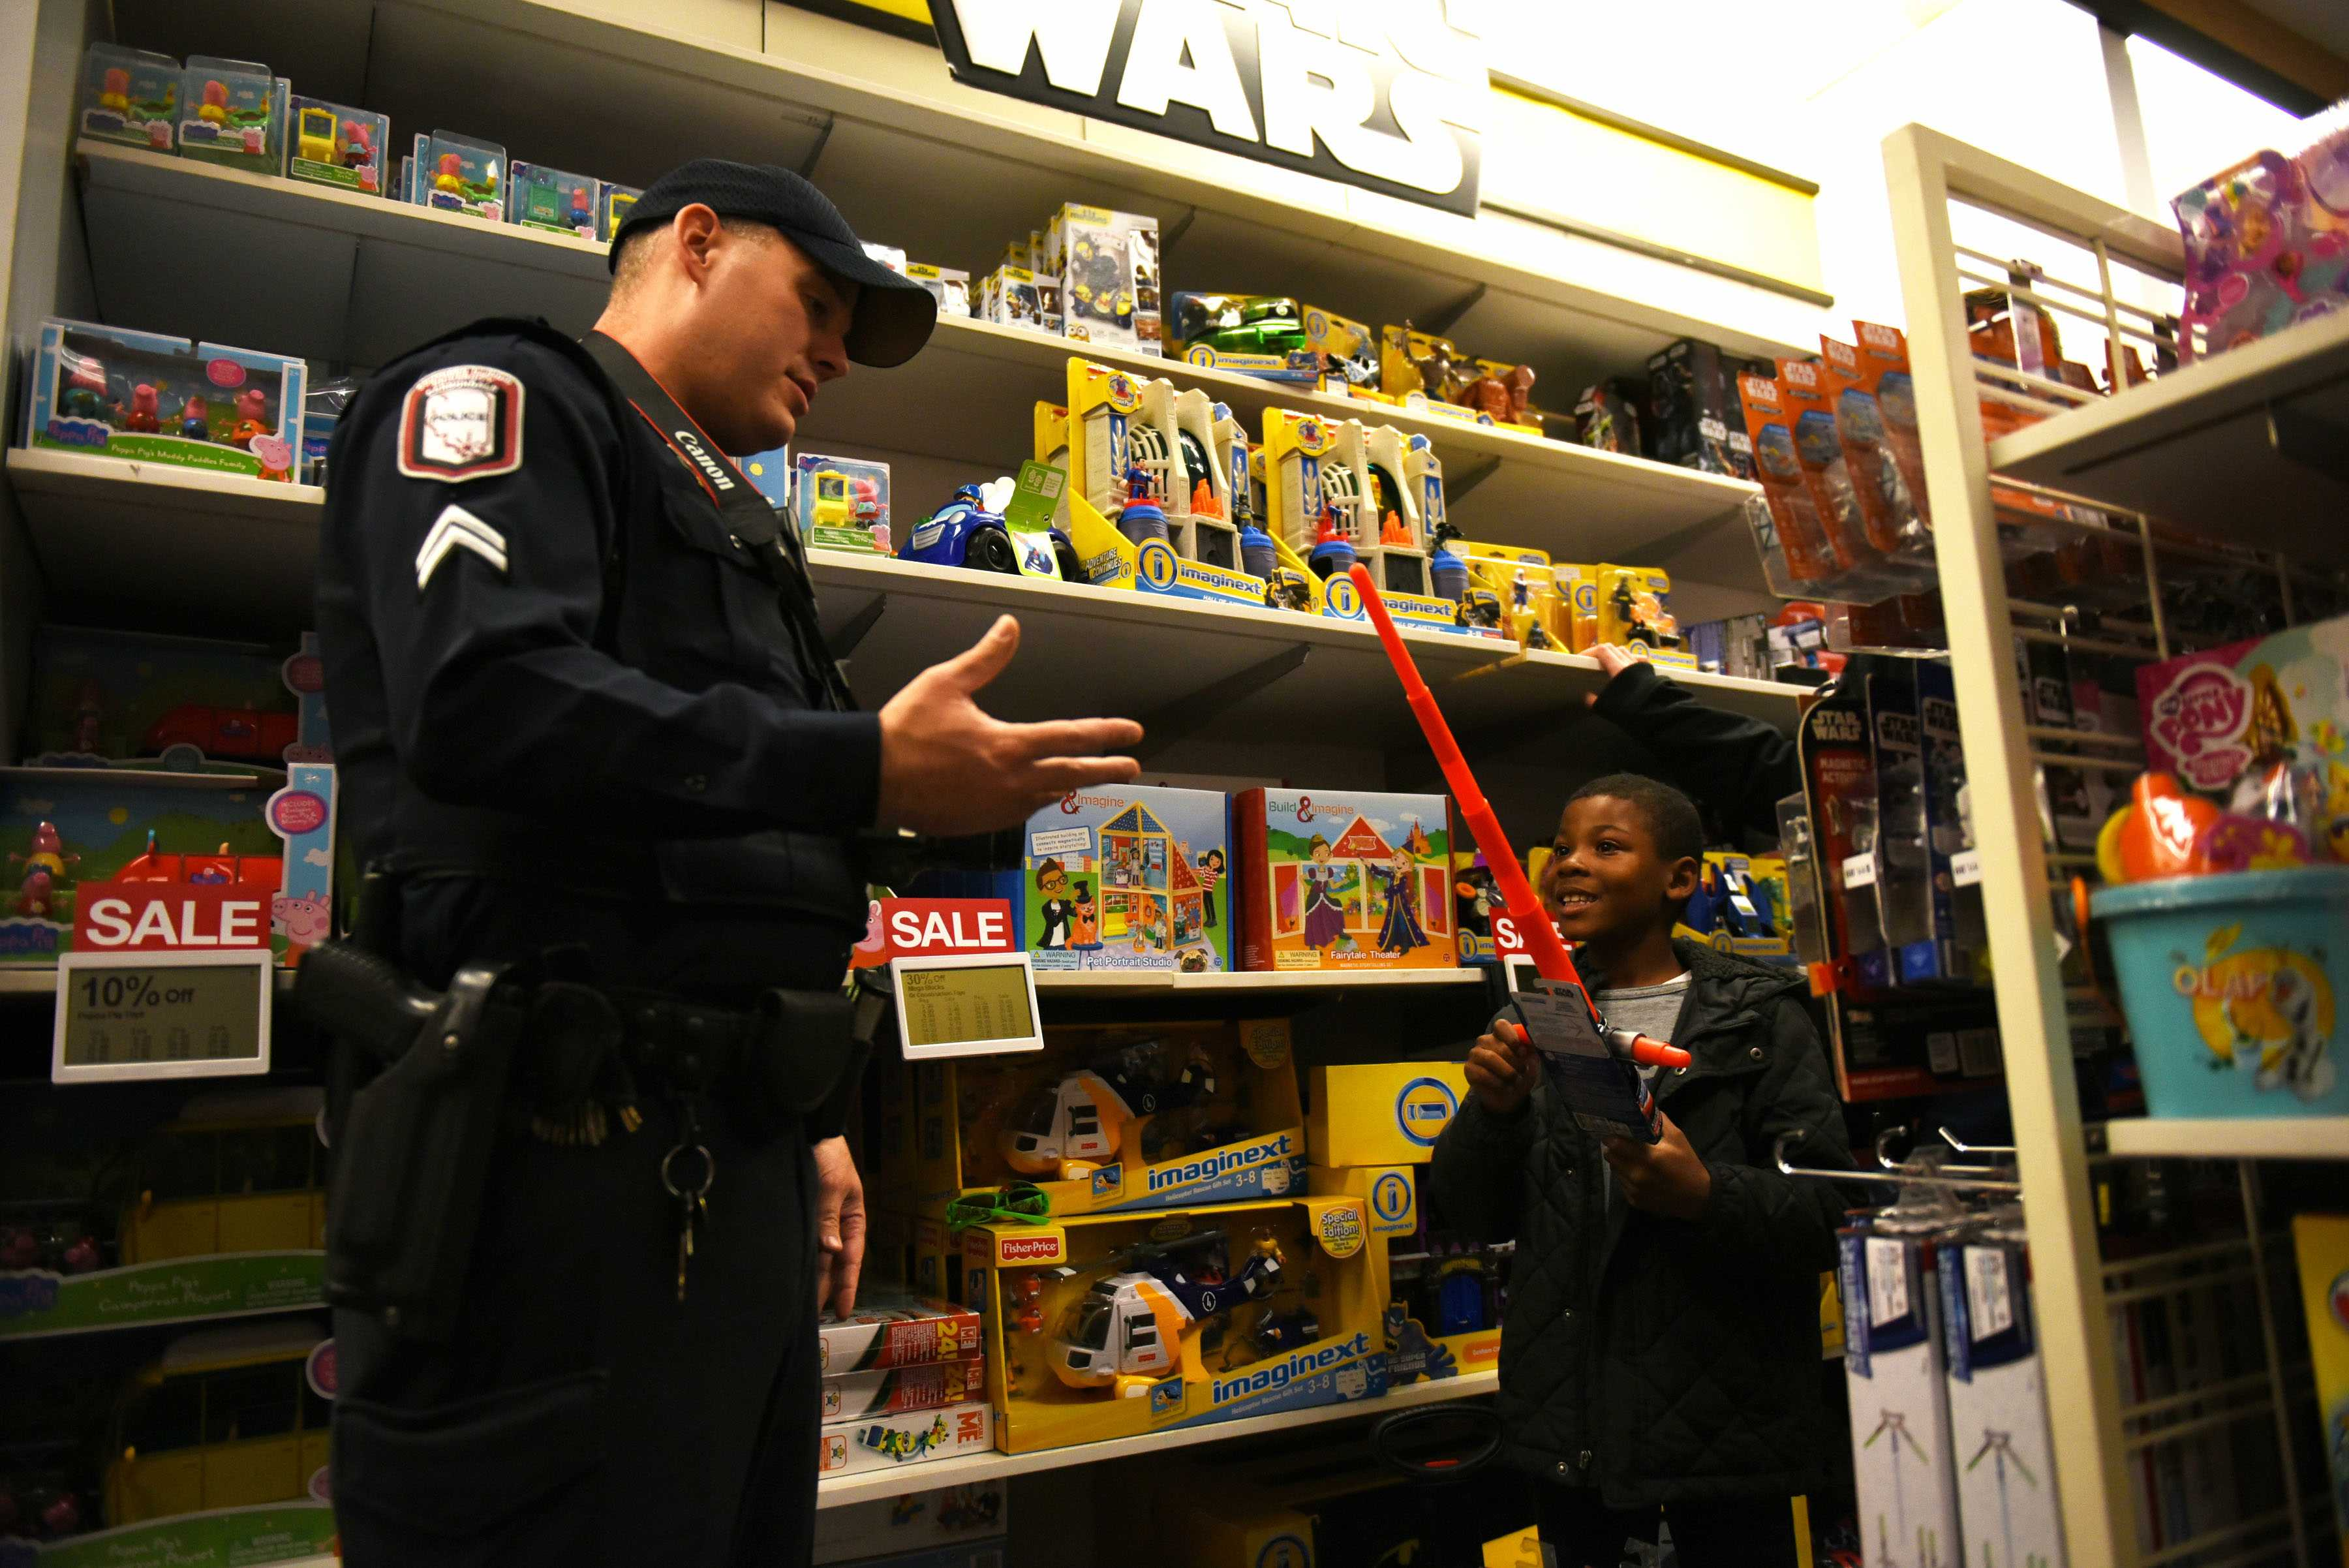 Isaiah McCoy, 8, shows SIU police Cpl. Adam Cunico a toy sword he found during Operation Sergeant Santa, a fifth-annual fundraiser organized by SIU's chapter of Public Relations Student Society of America. Each child paired up with an SIU police officer and PRSSA member to spend the $100 they were given to buy gifts for their families.